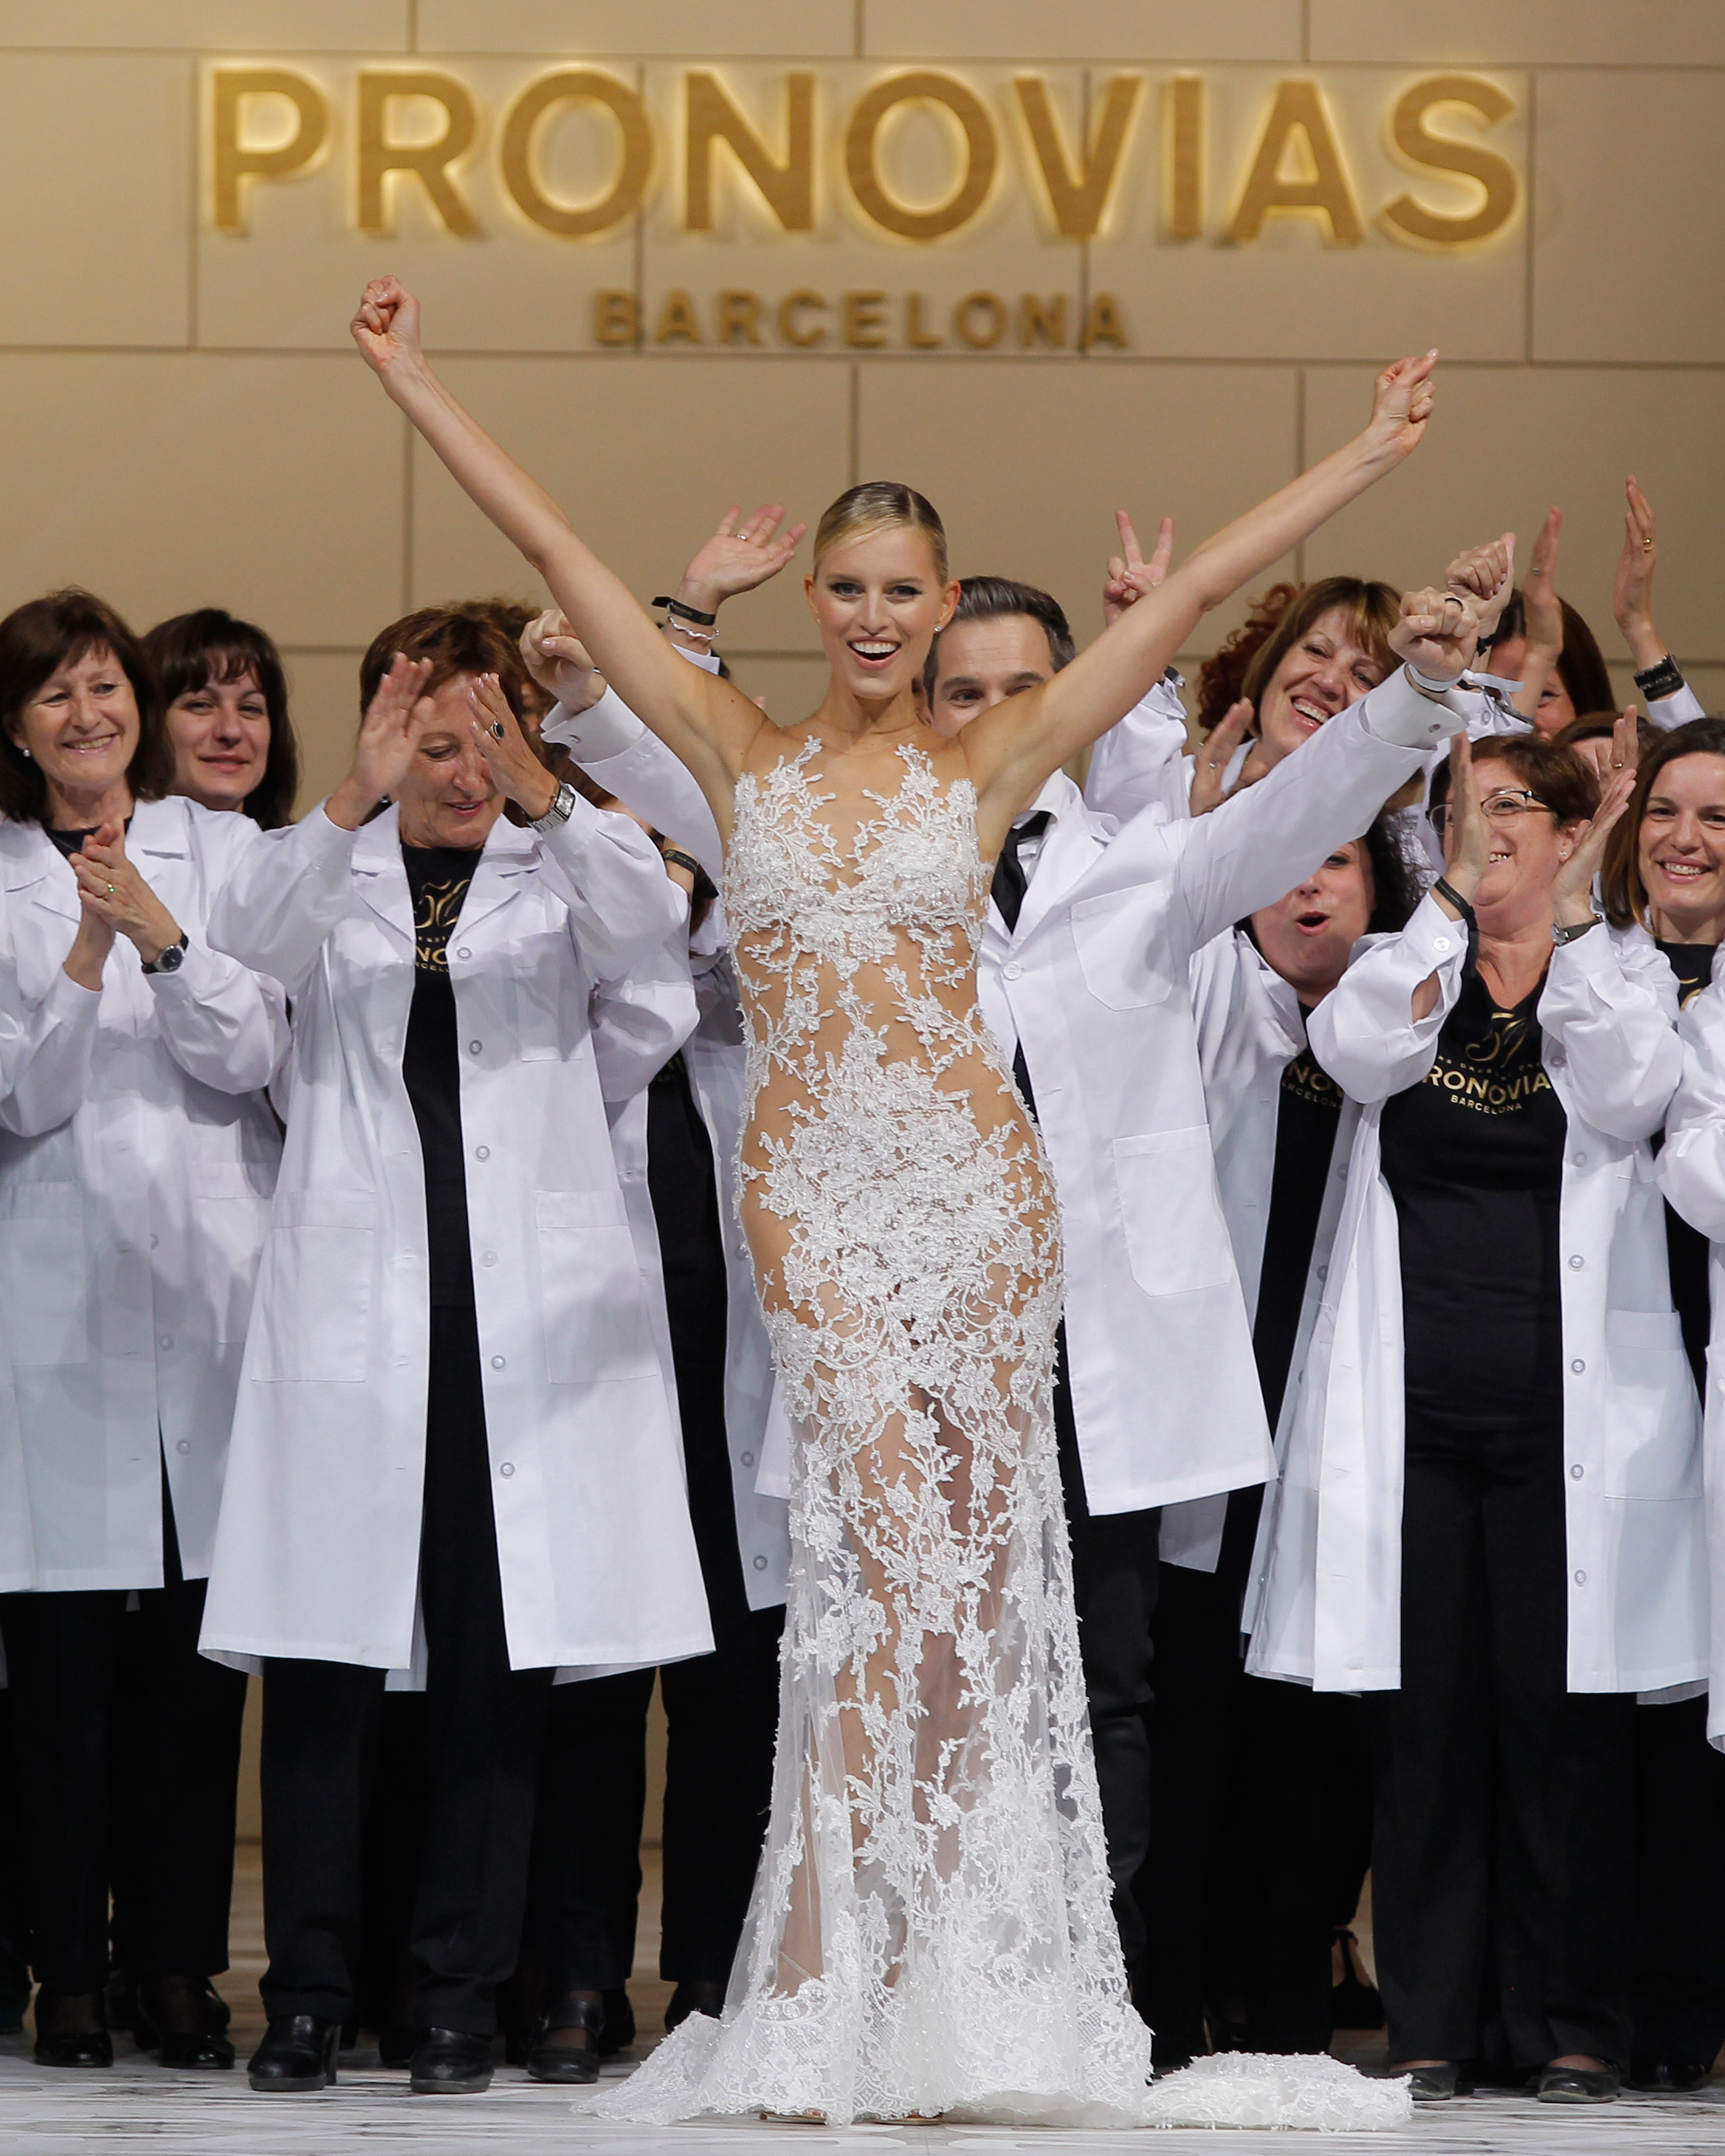 Karolina Kurkova Walked at Pronovias